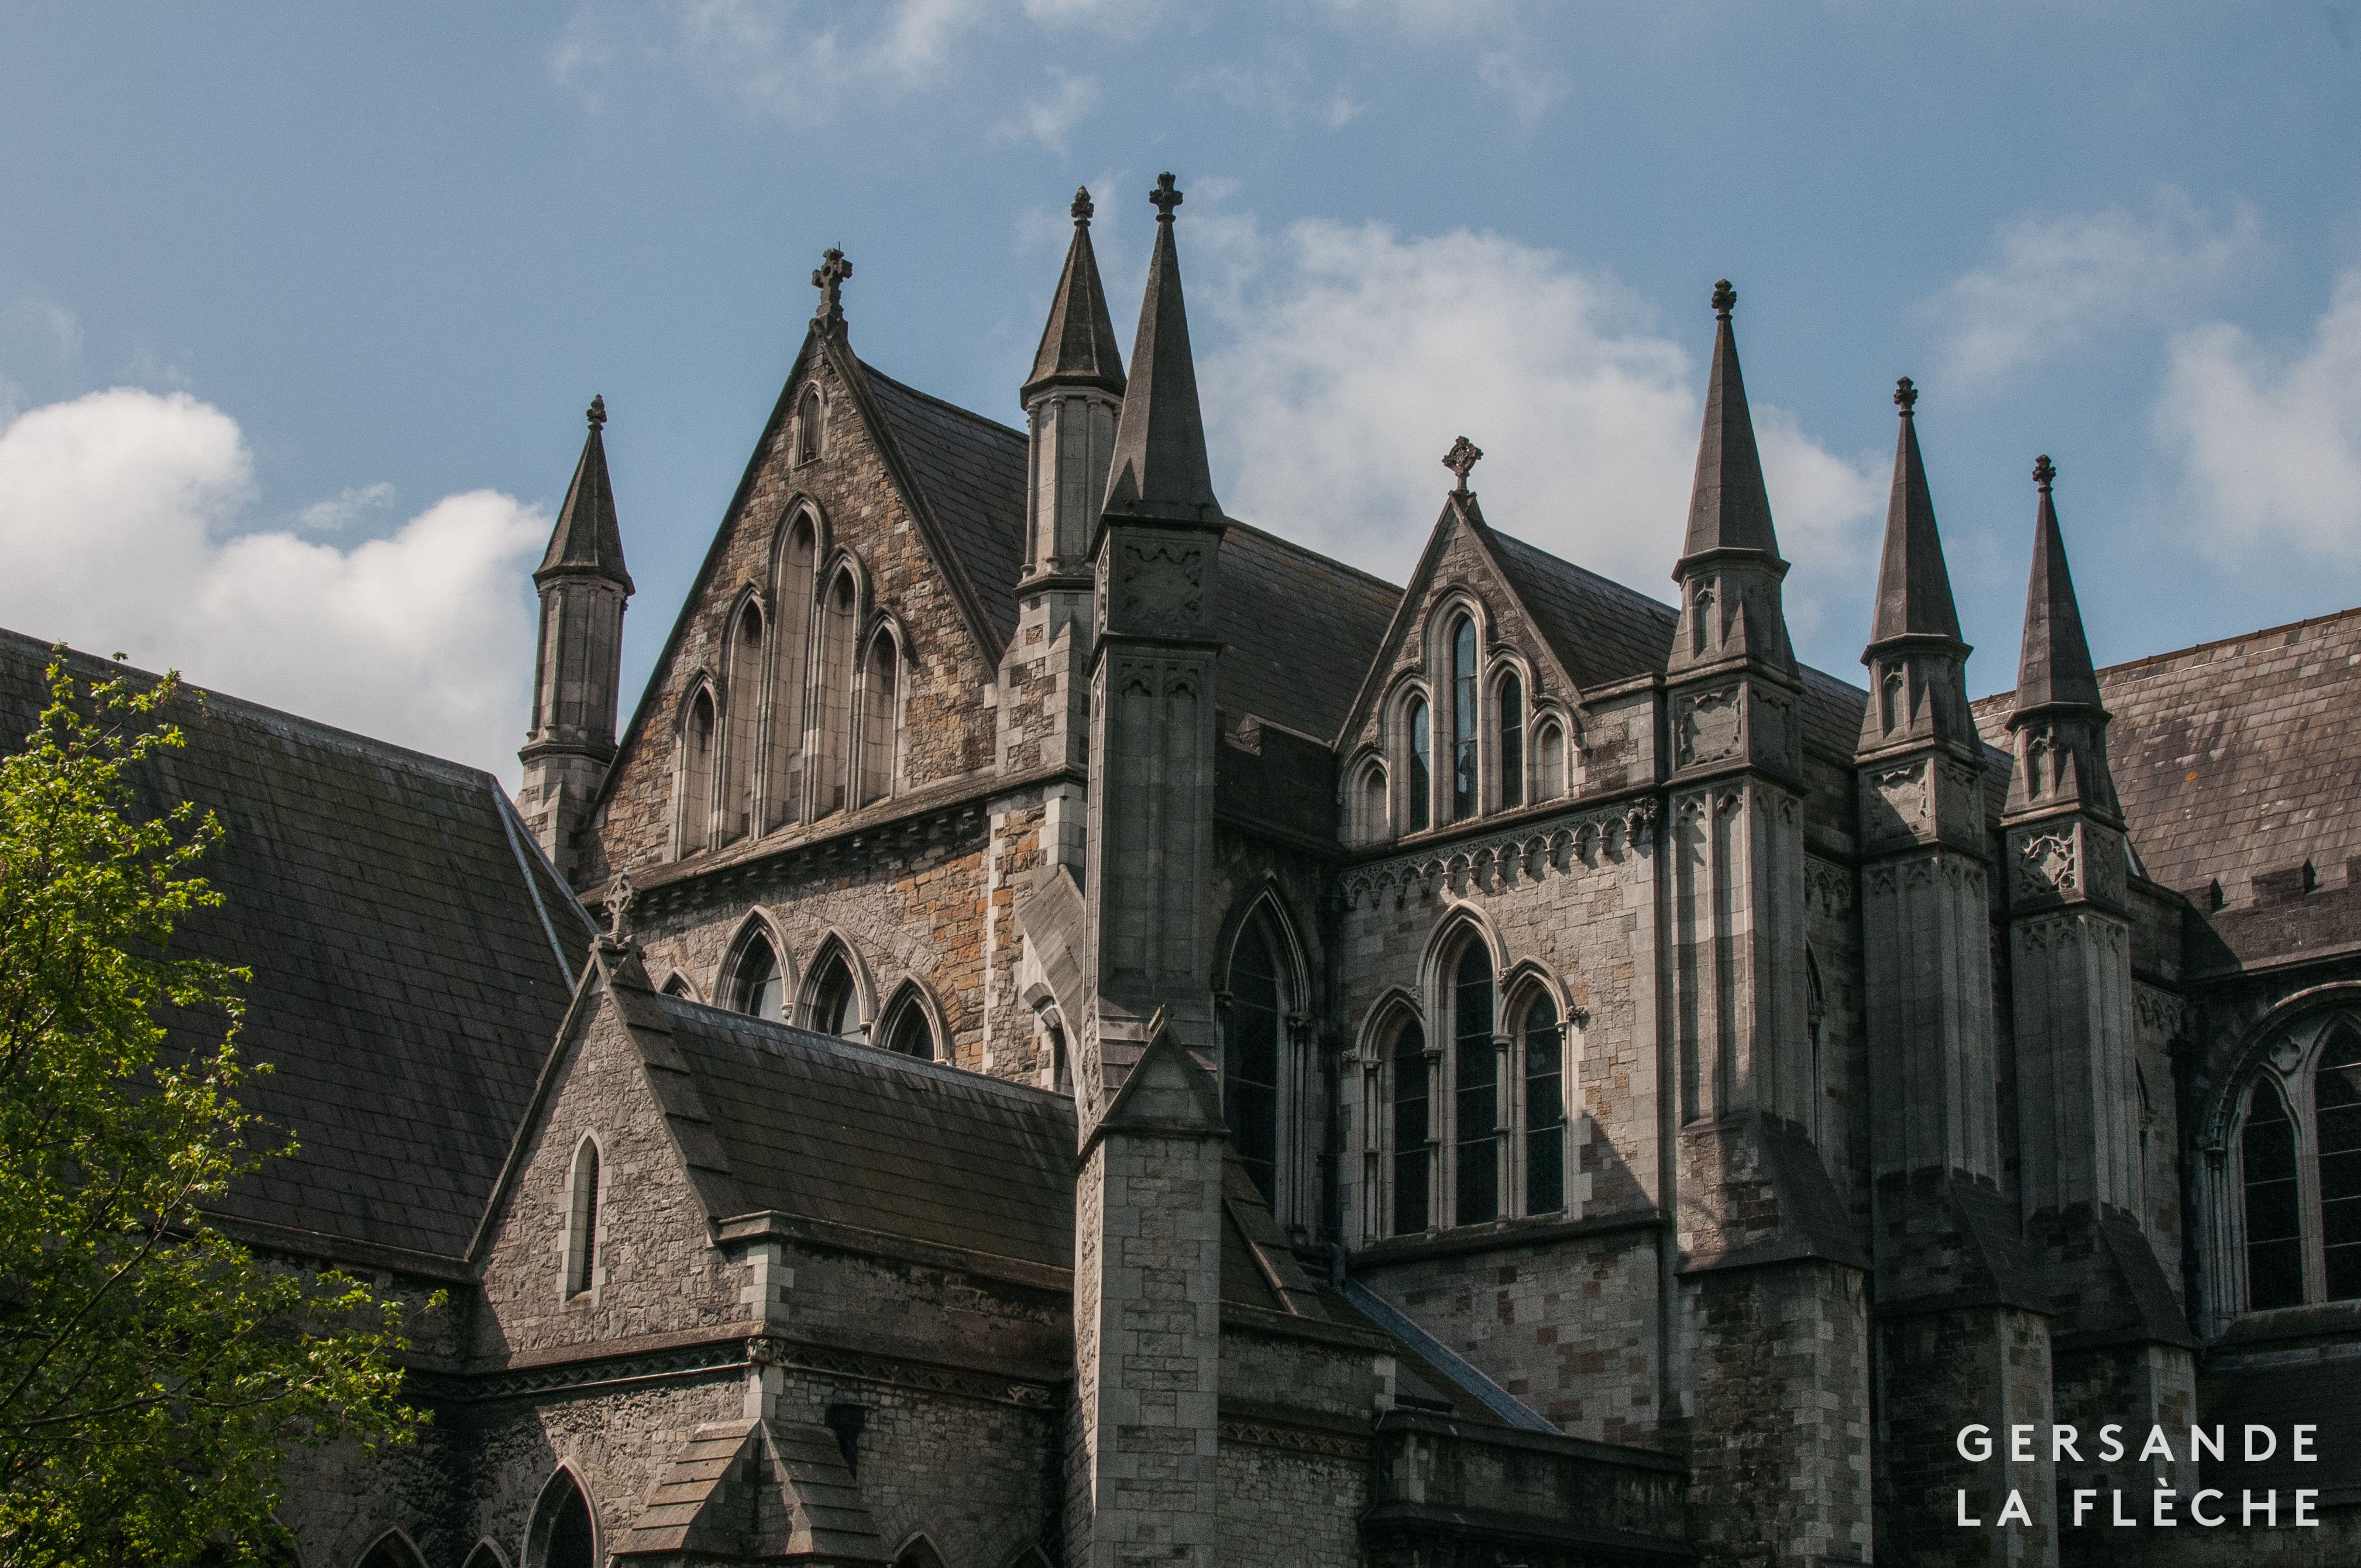 Photo by the author of Saint Patrick's cathedral.